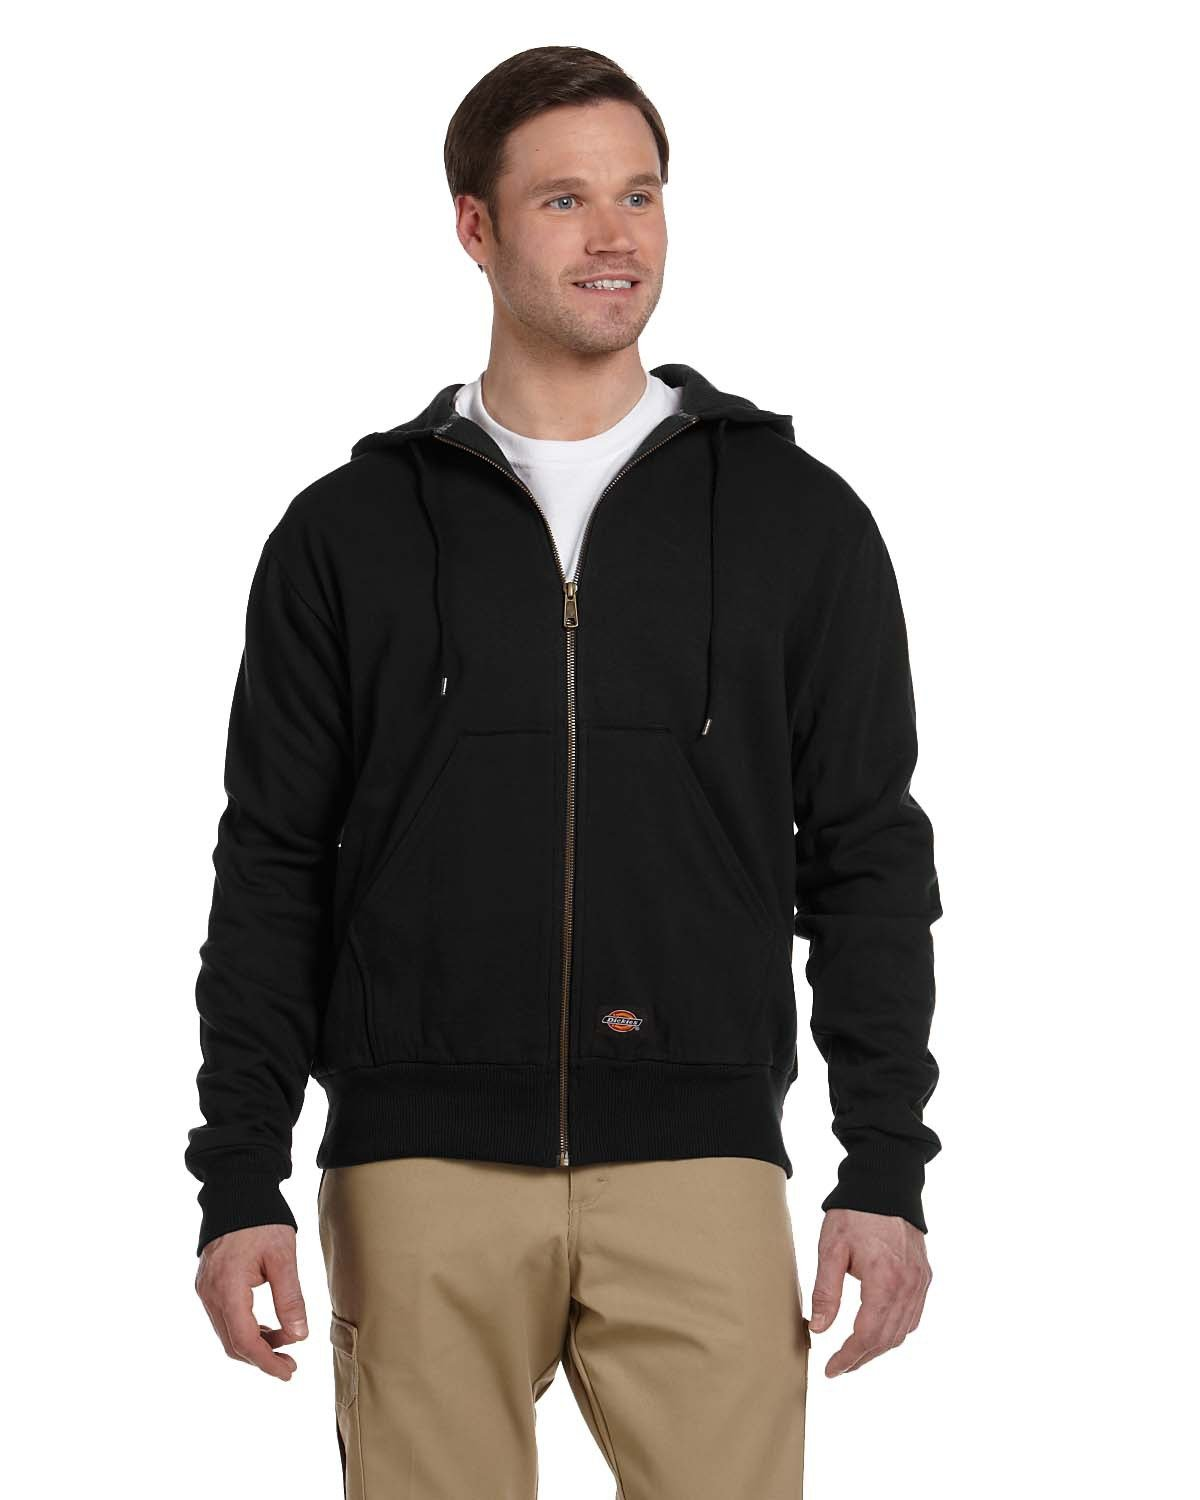 Dickies Men's 470 Gram Thermal-Lined Fleece Jacket Hooded Sweatshirt BLACK